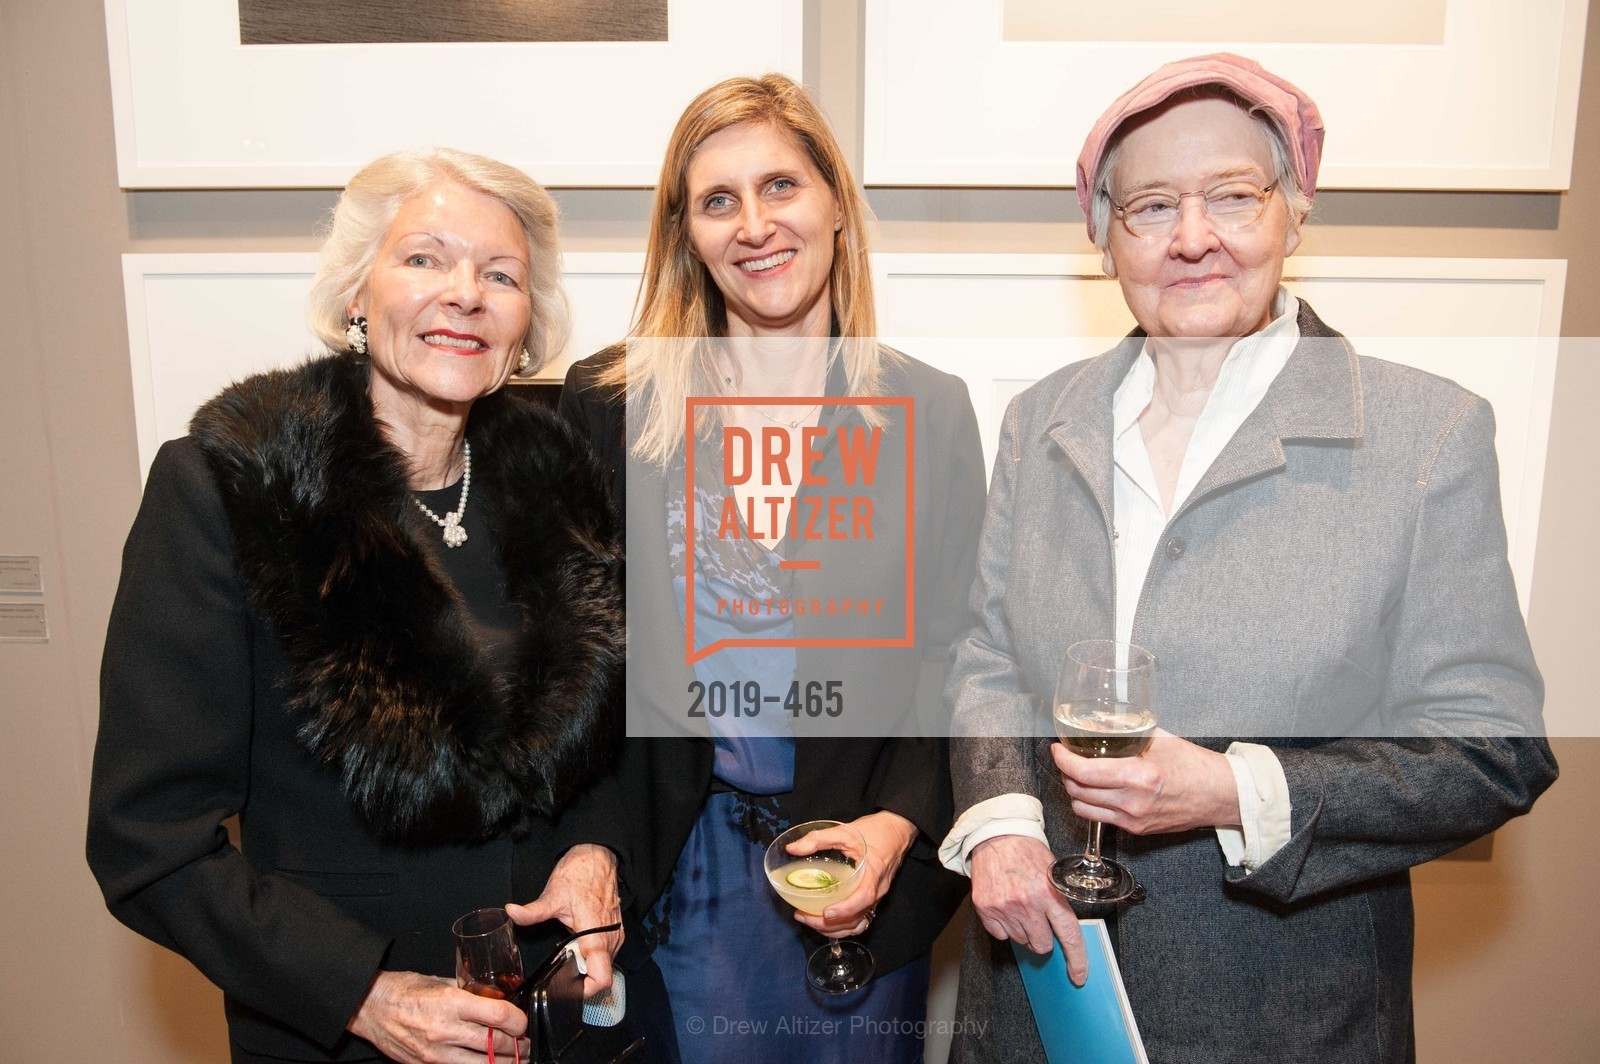 Rica Lakamp, Jennifer Dunlop Fletcher, Miranda Leonard, FOG Design + Art Preview Gala, US. US, January 16th, 2014,Drew Altizer, Drew Altizer Photography, full-service agency, private events, San Francisco photographer, photographer california